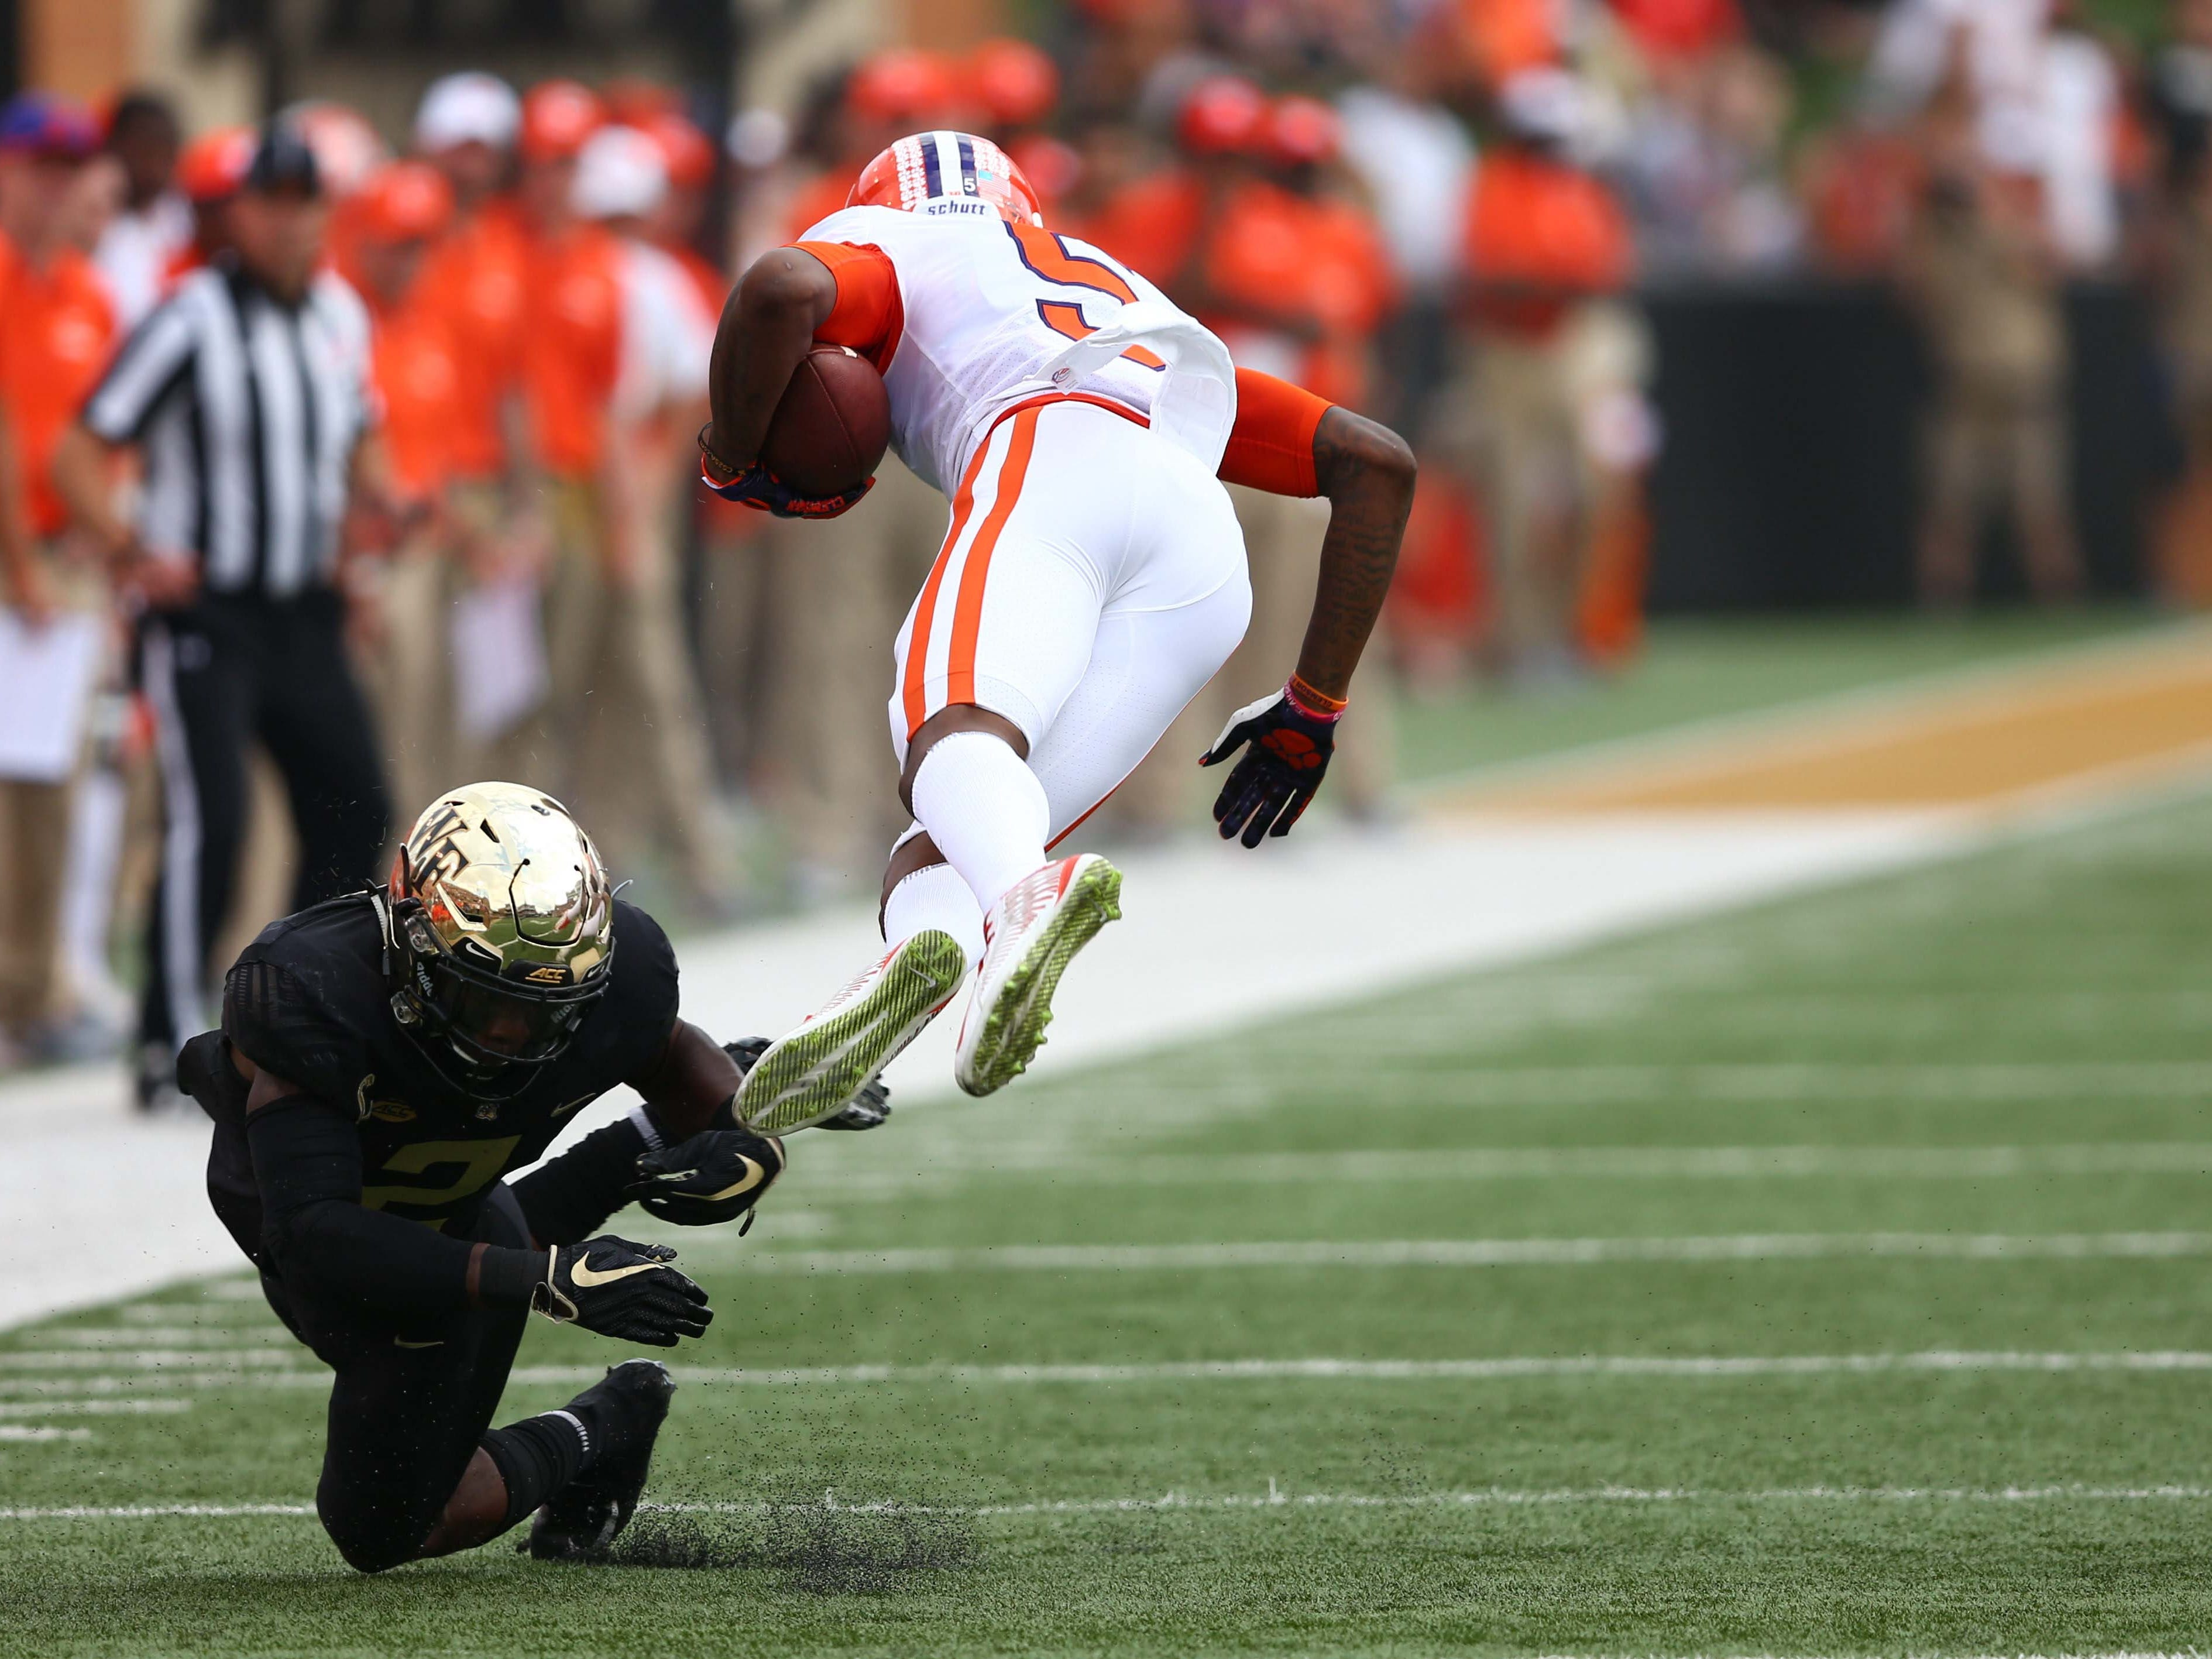 Wake Forest Demon Deacons defensive back Cameron Glenn upends Clemson Tigers wide receiver Tee Higgins in the first quarter at BB&T Field.